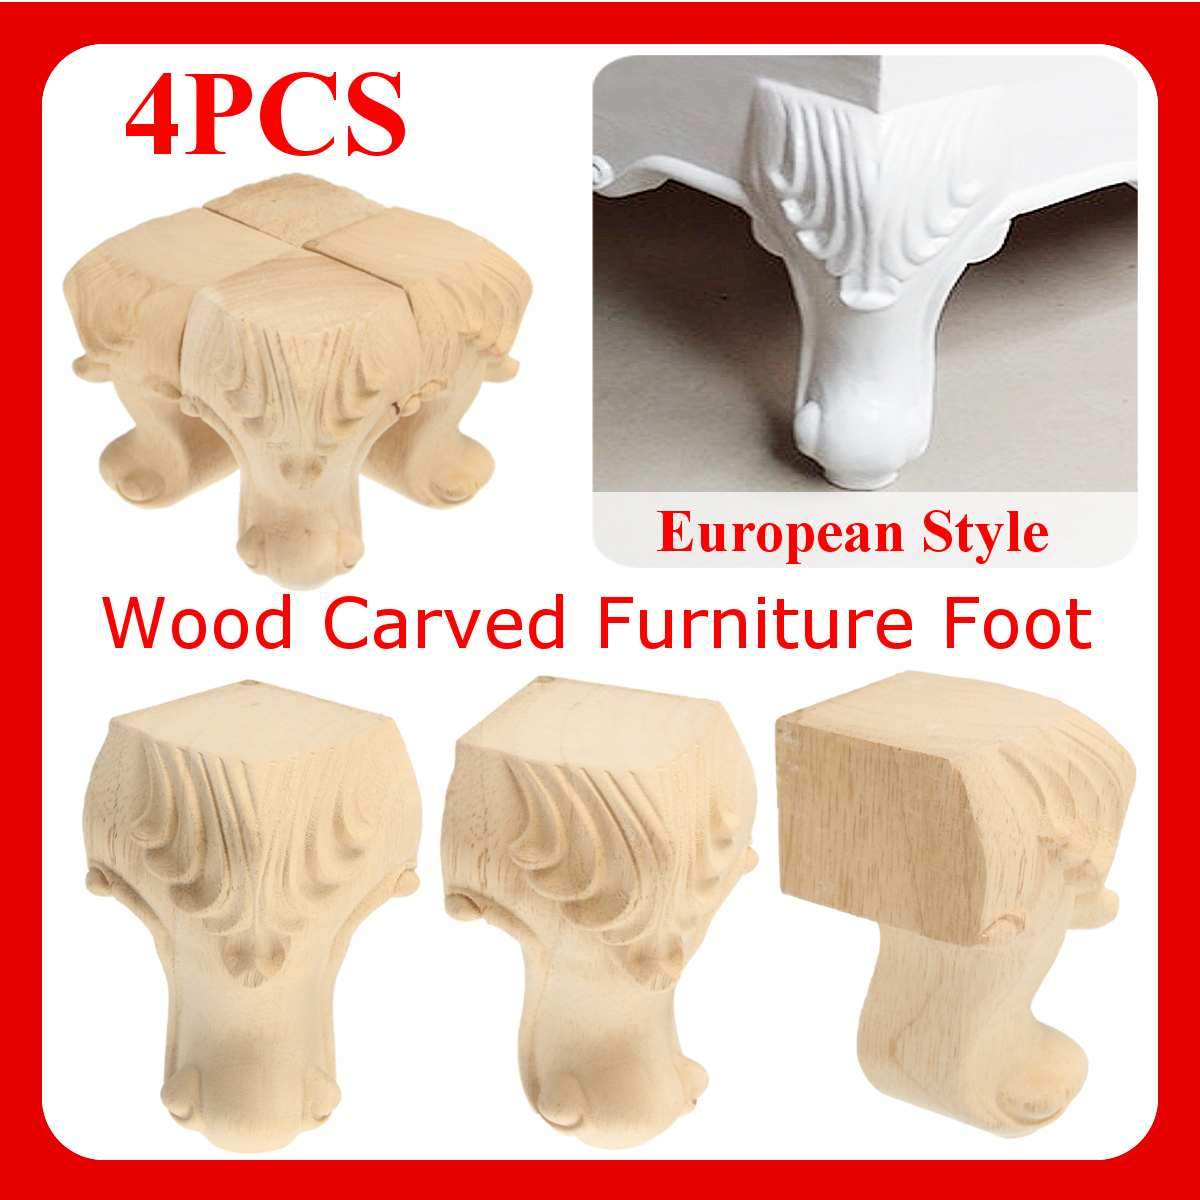 4PCS European Style Solid Wood Carved Furniture Foot Legs TV Cabinet Couch Sofa Wood Furniture Table Feets Seat leg wood carving4PCS European Style Solid Wood Carved Furniture Foot Legs TV Cabinet Couch Sofa Wood Furniture Table Feets Seat leg wood carving